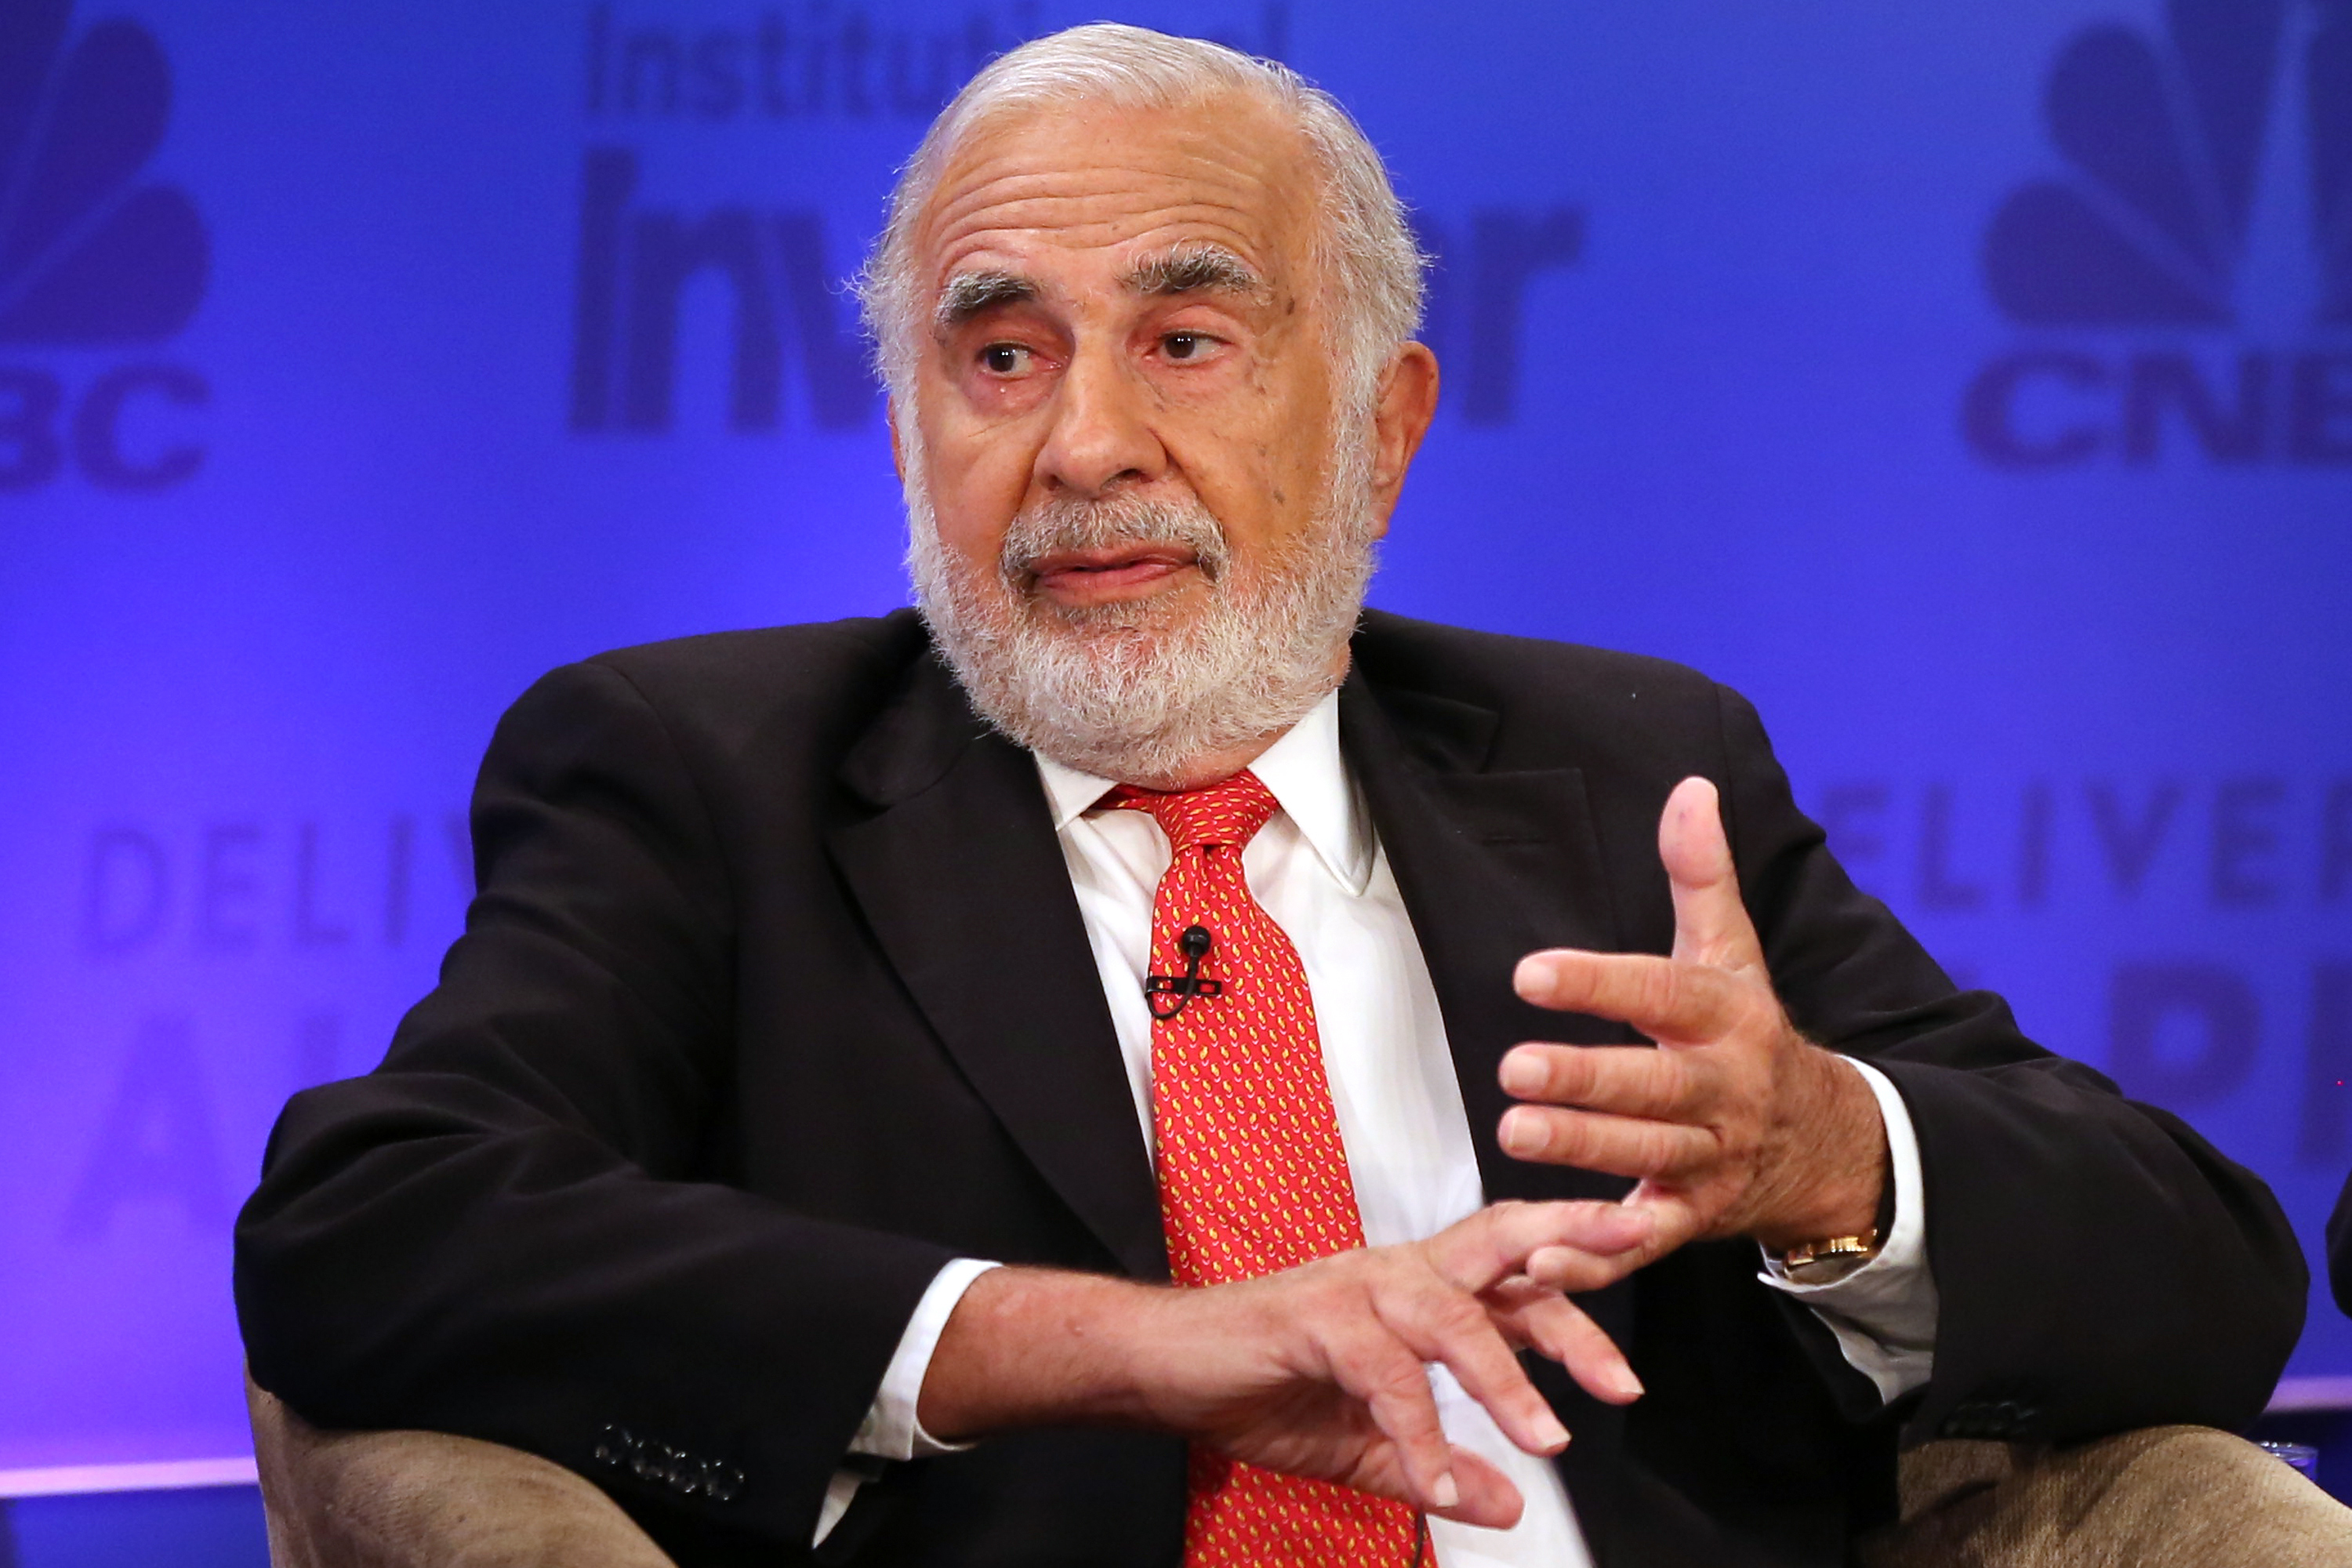 Carl Icahn, Chairman, Icahn Enterprises, at the 2015 Delivering Alpha Conference on July 15, 2015.